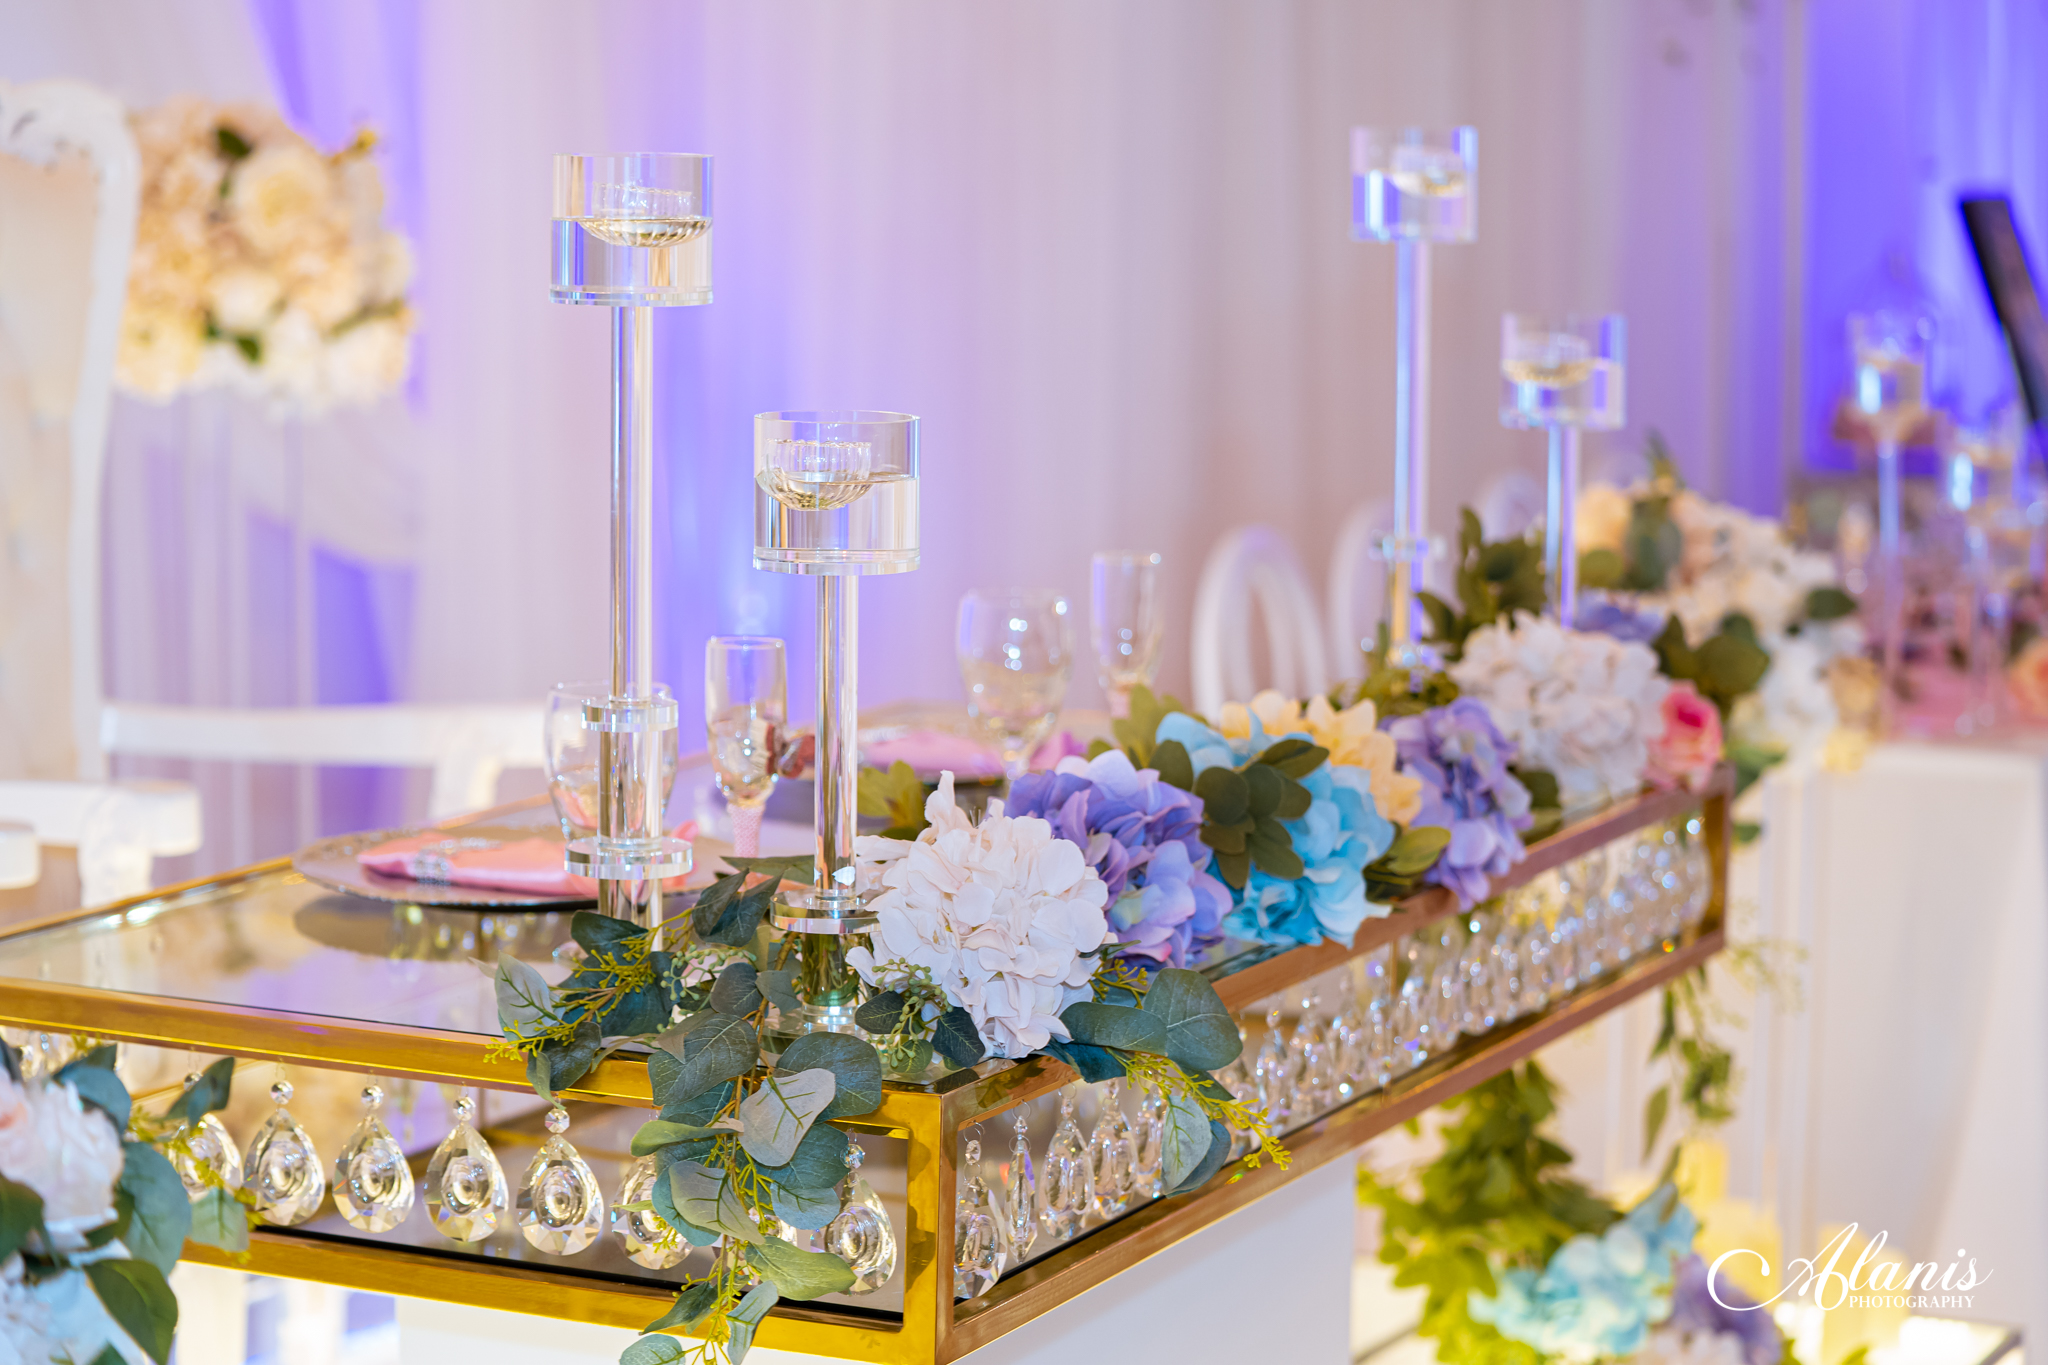 LeVenue front ballroom table and dining decor